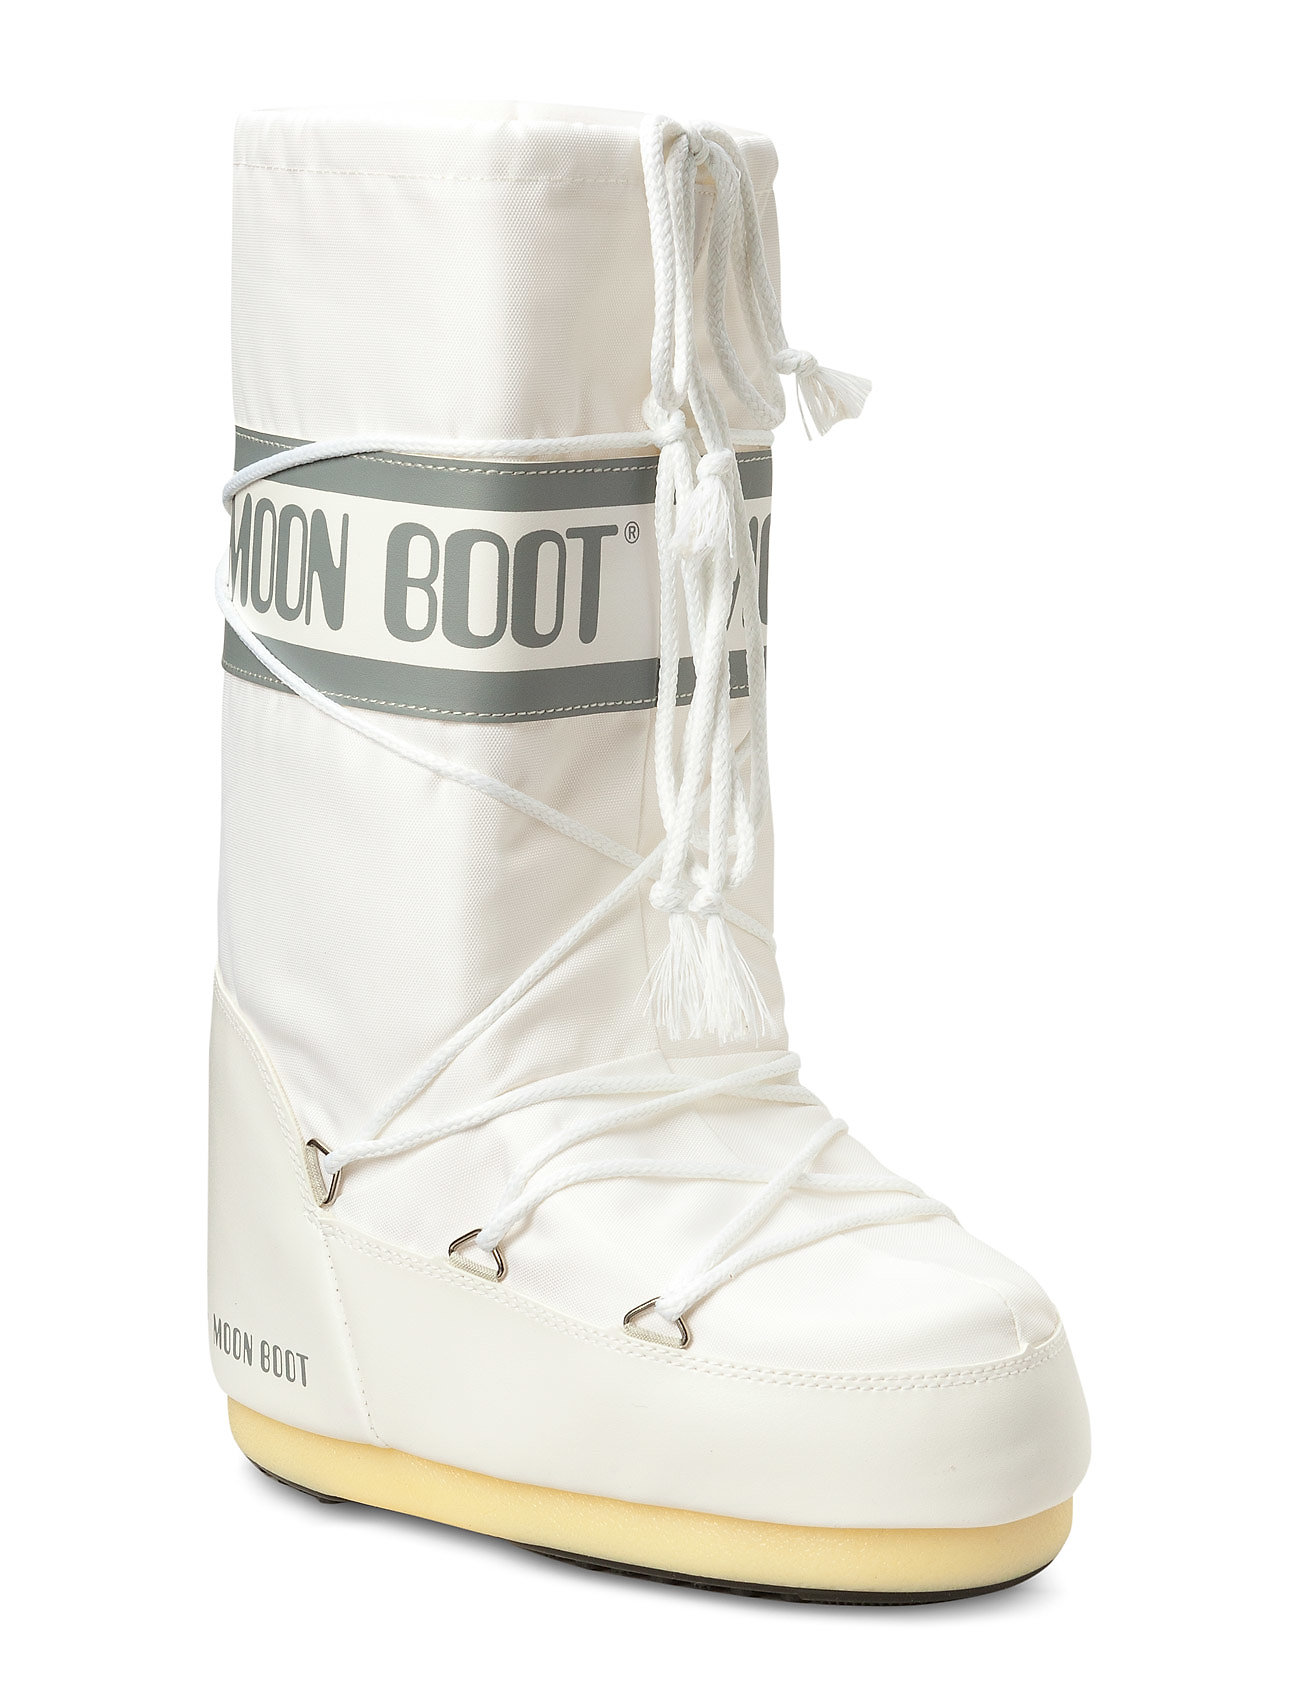 Image of Moon Boot Nylon Shoes Boots Ankle Boots Ankle Boot - Flat Hvid Moon Boot (3446397217)